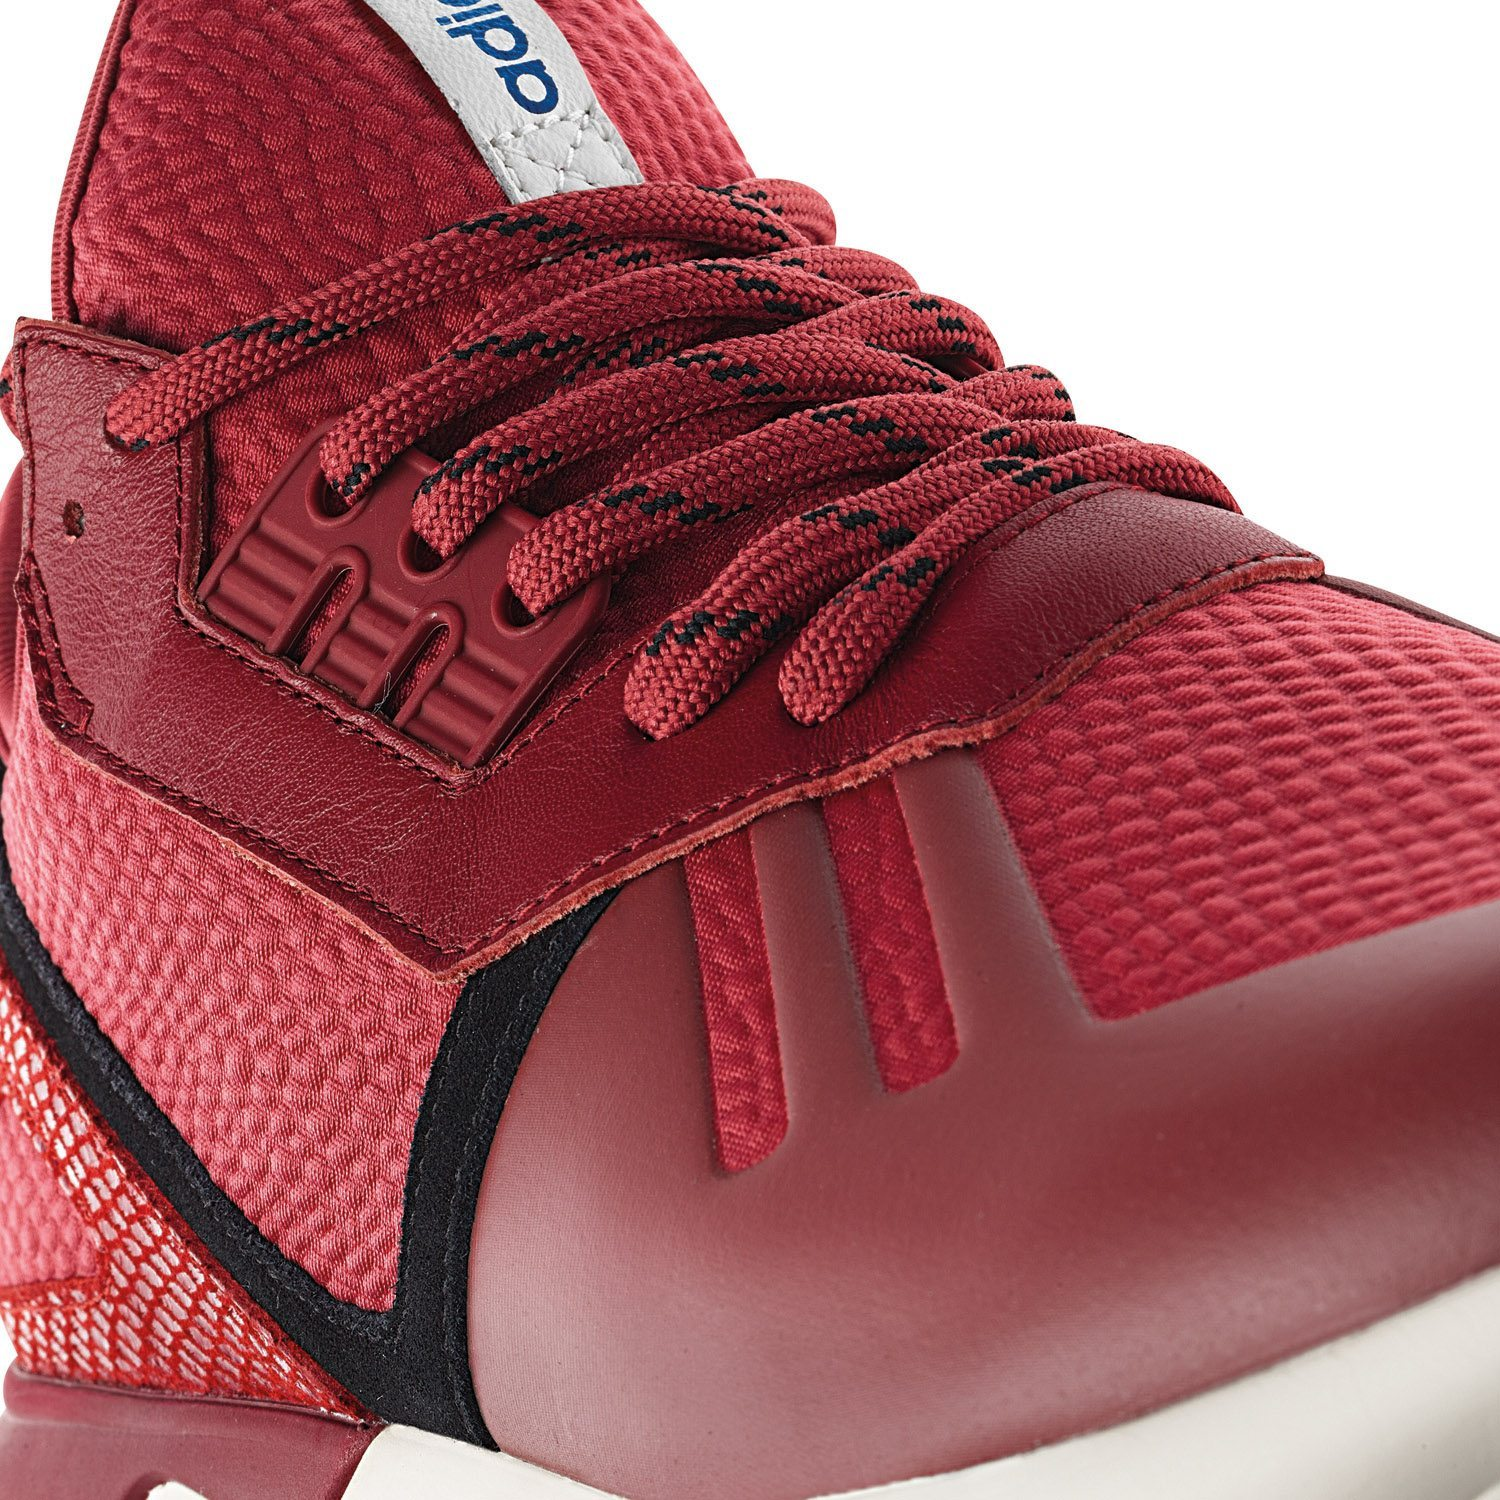 adidas Originals Tubular Runner Snake Pack 15